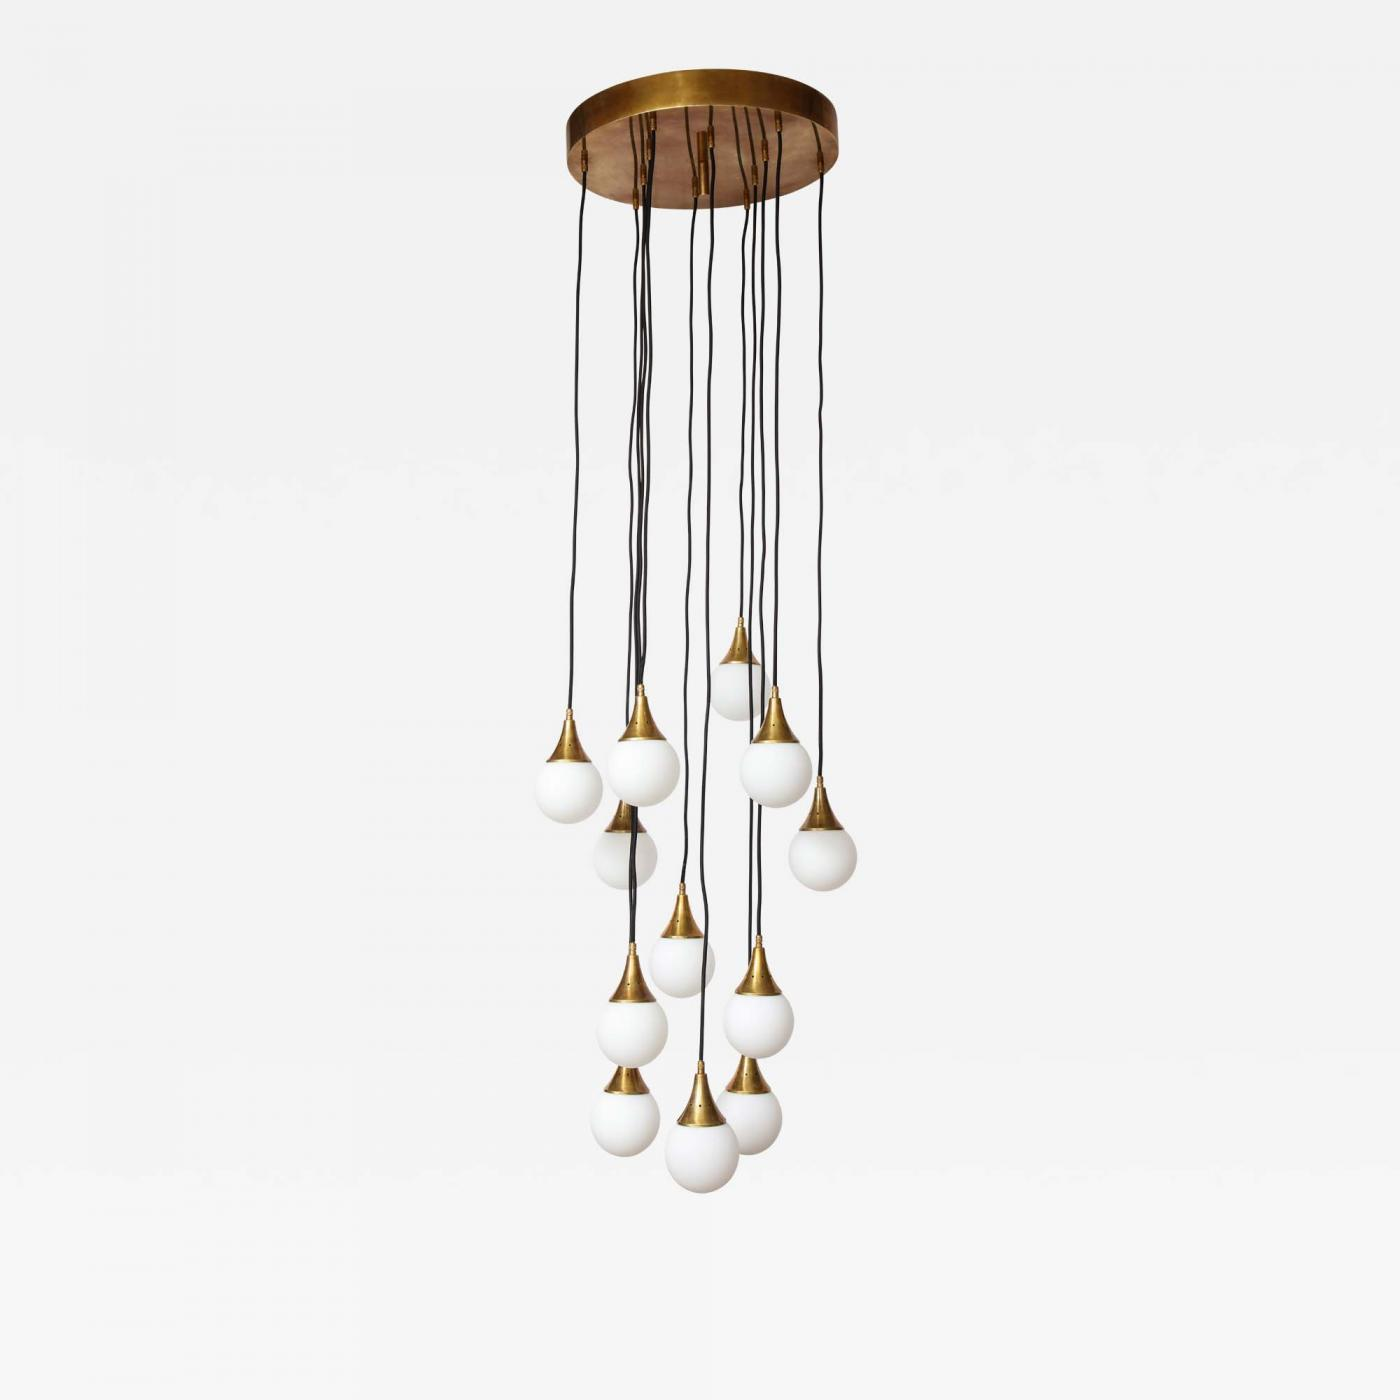 Stilnovo Stilnovo Cascading Chandelier With Twelve Opaline Glass Ball Lights